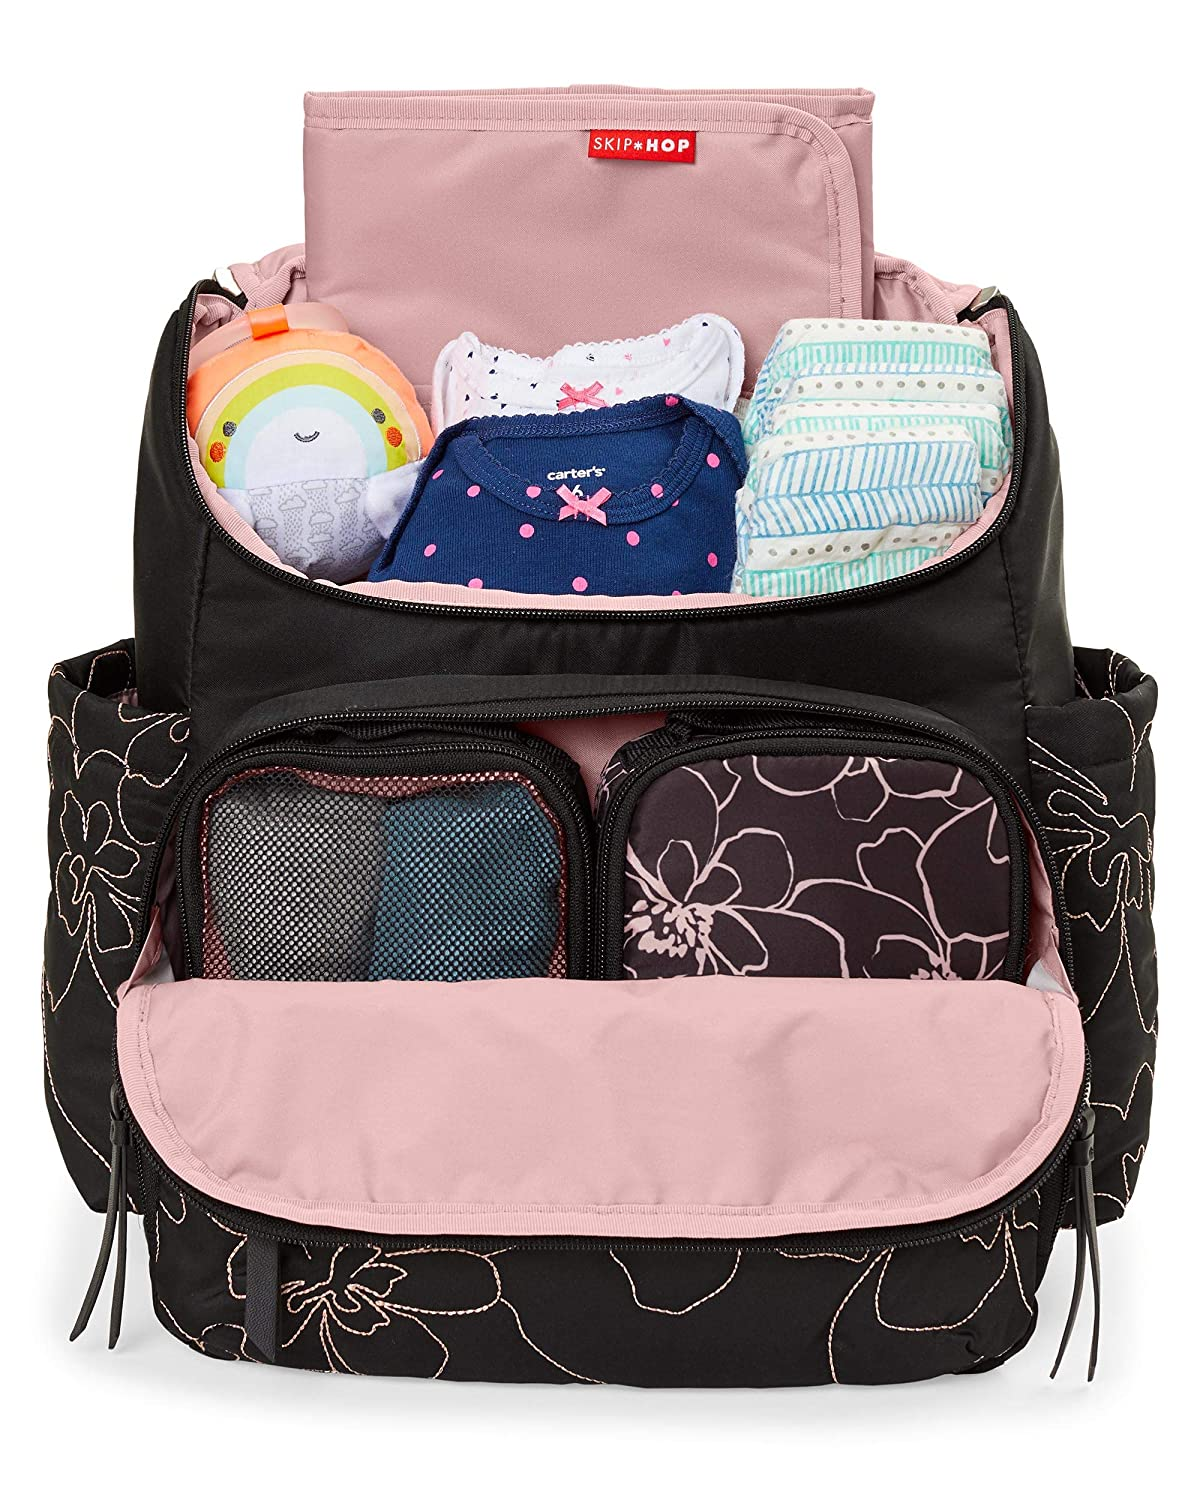 Skip Hop Diaper Bag Backpack Forma Multi-Function Baby Travel Bag with Changing Pad Grey